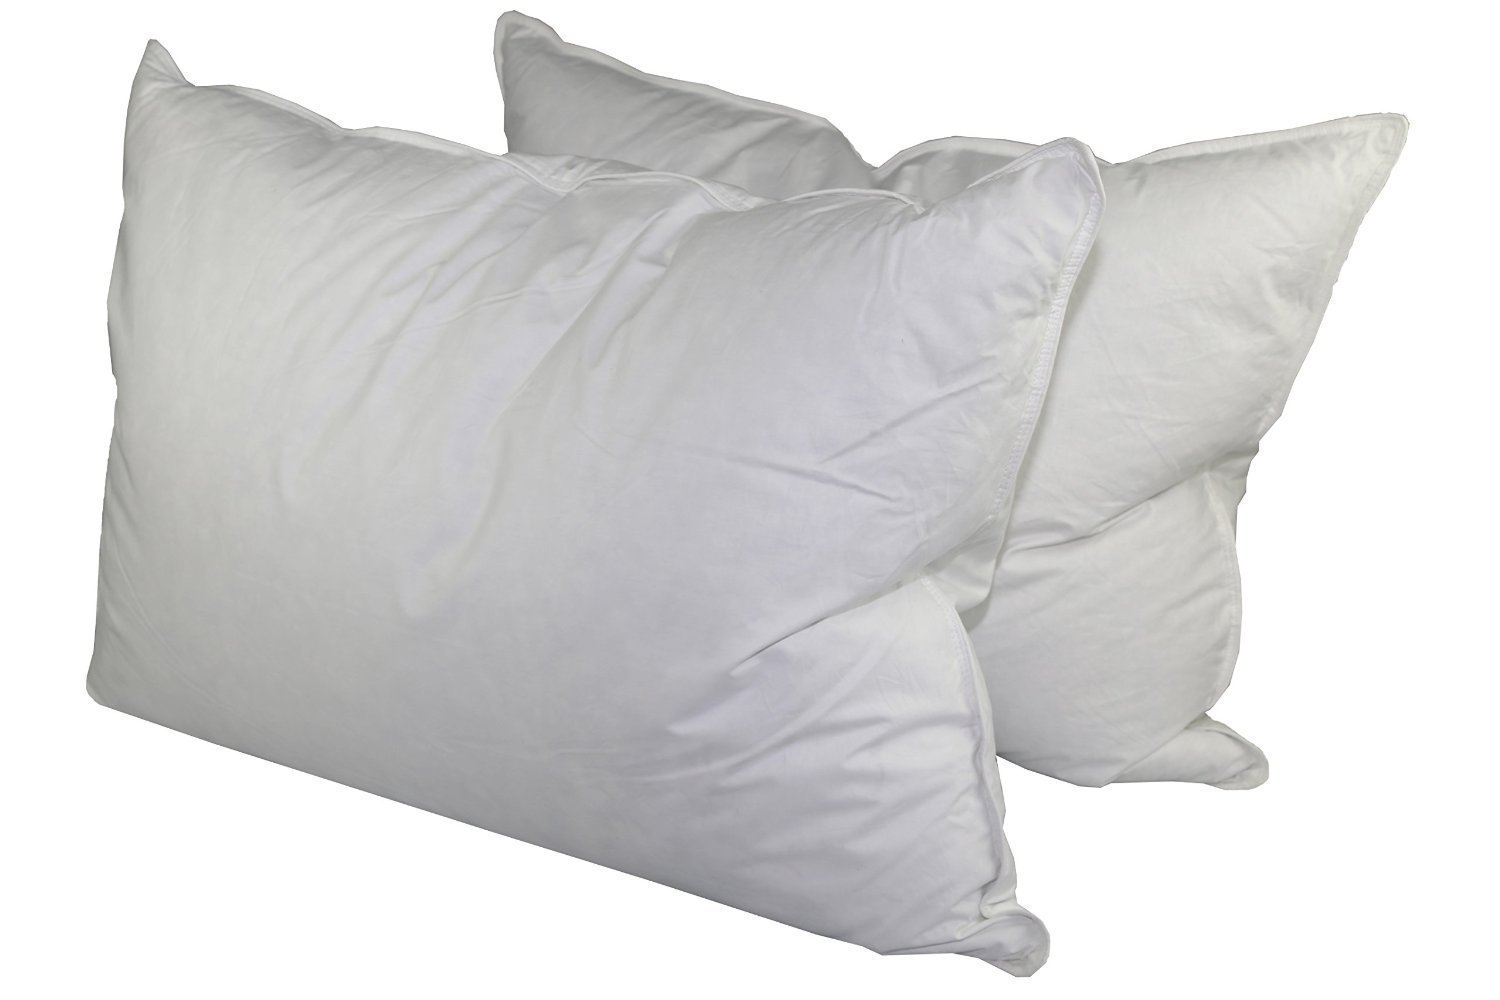 75% White Goose Feather / 25% White Goose Down Queen Pillow Set (2 Pillows)